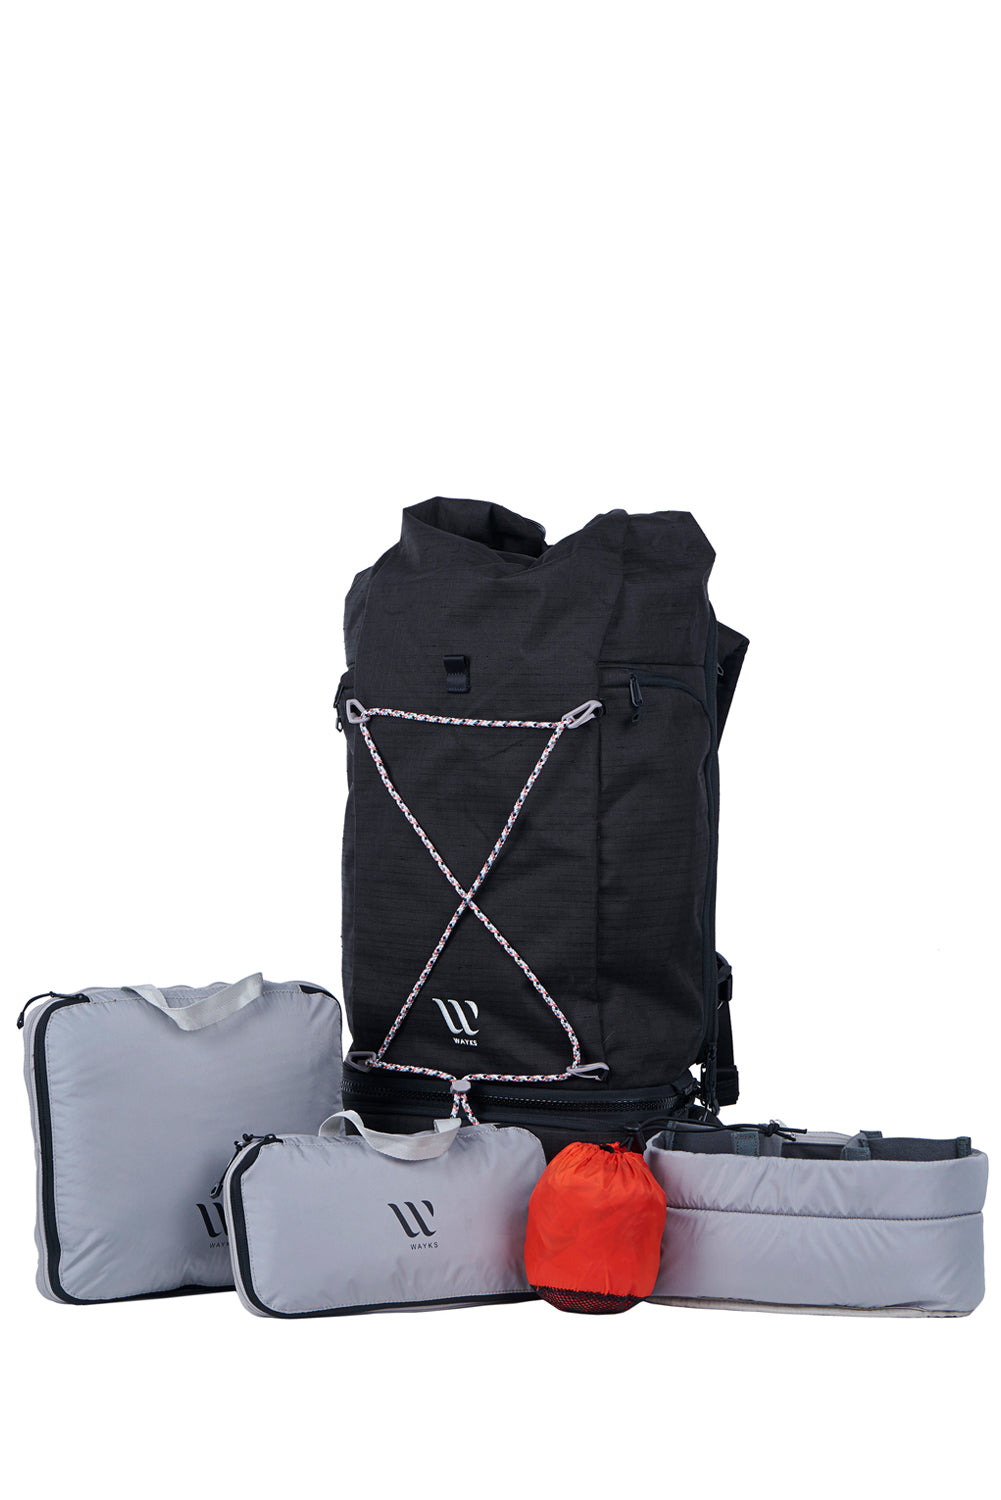 The Travel Bundle Original